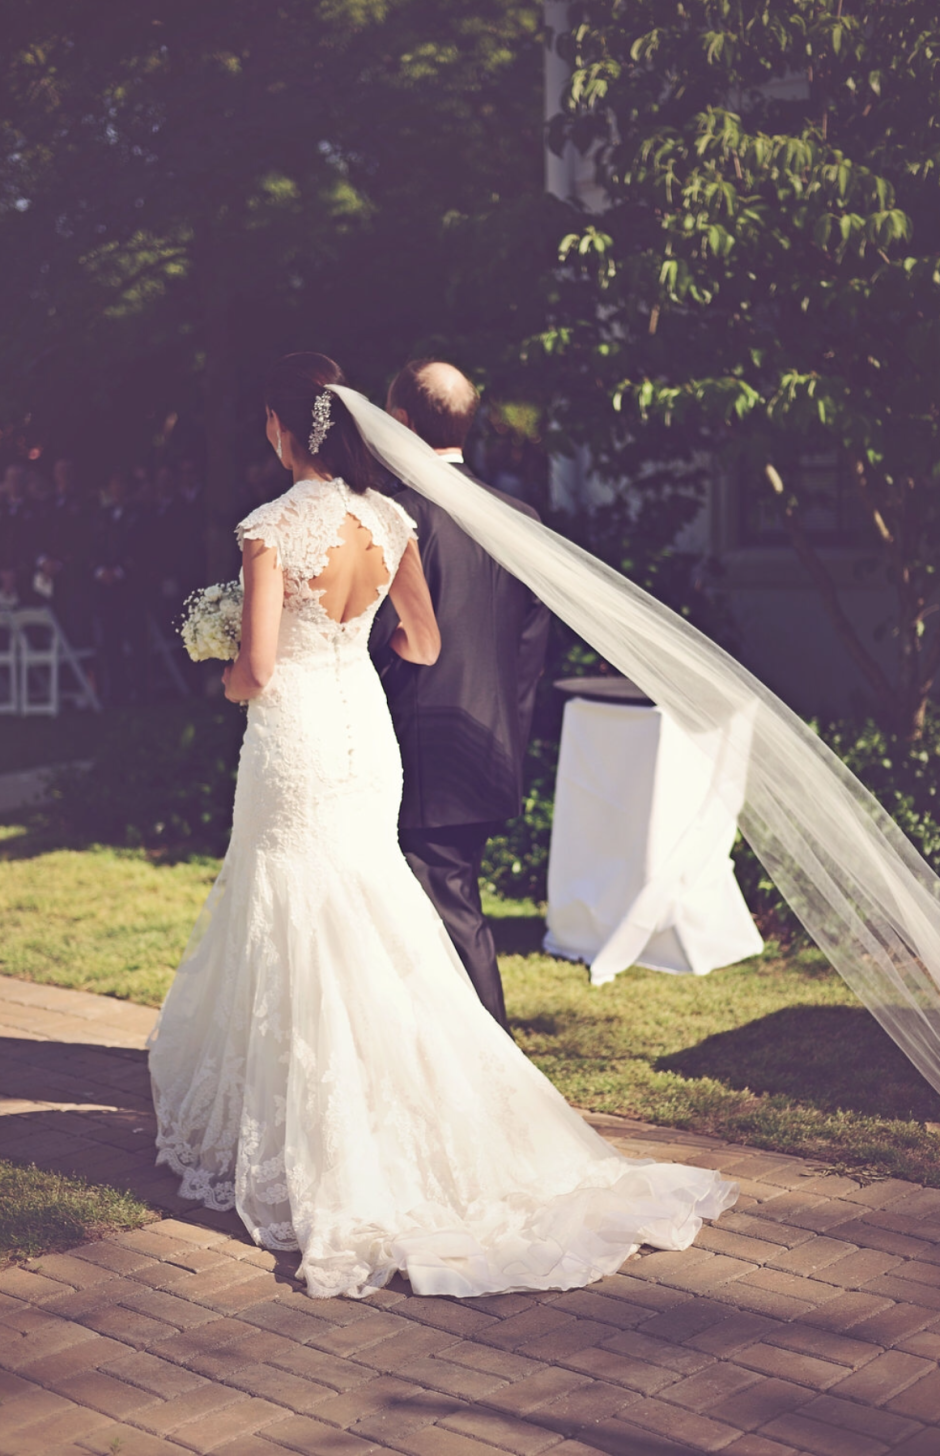 Elegant Southern Bride - Long Wedding Veil